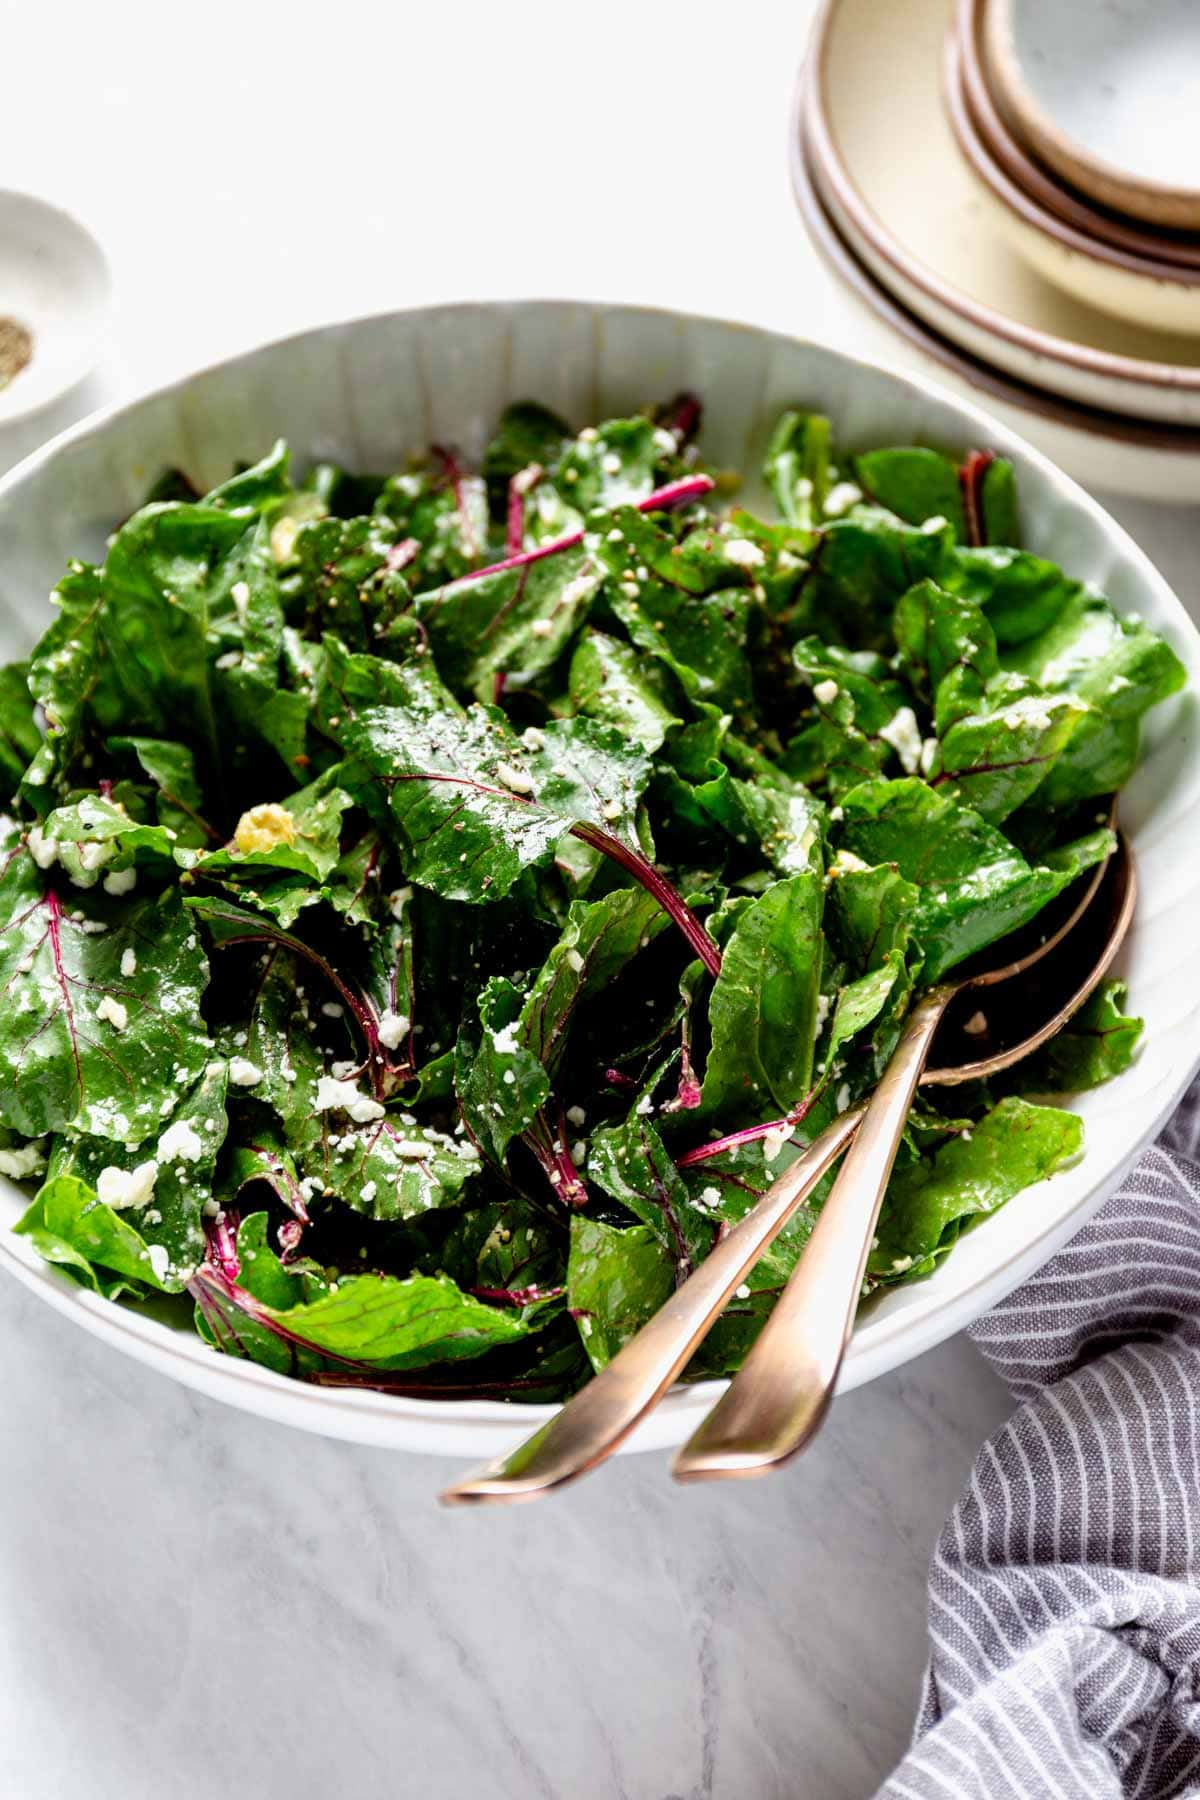 beet greens in a white bowl with tongs